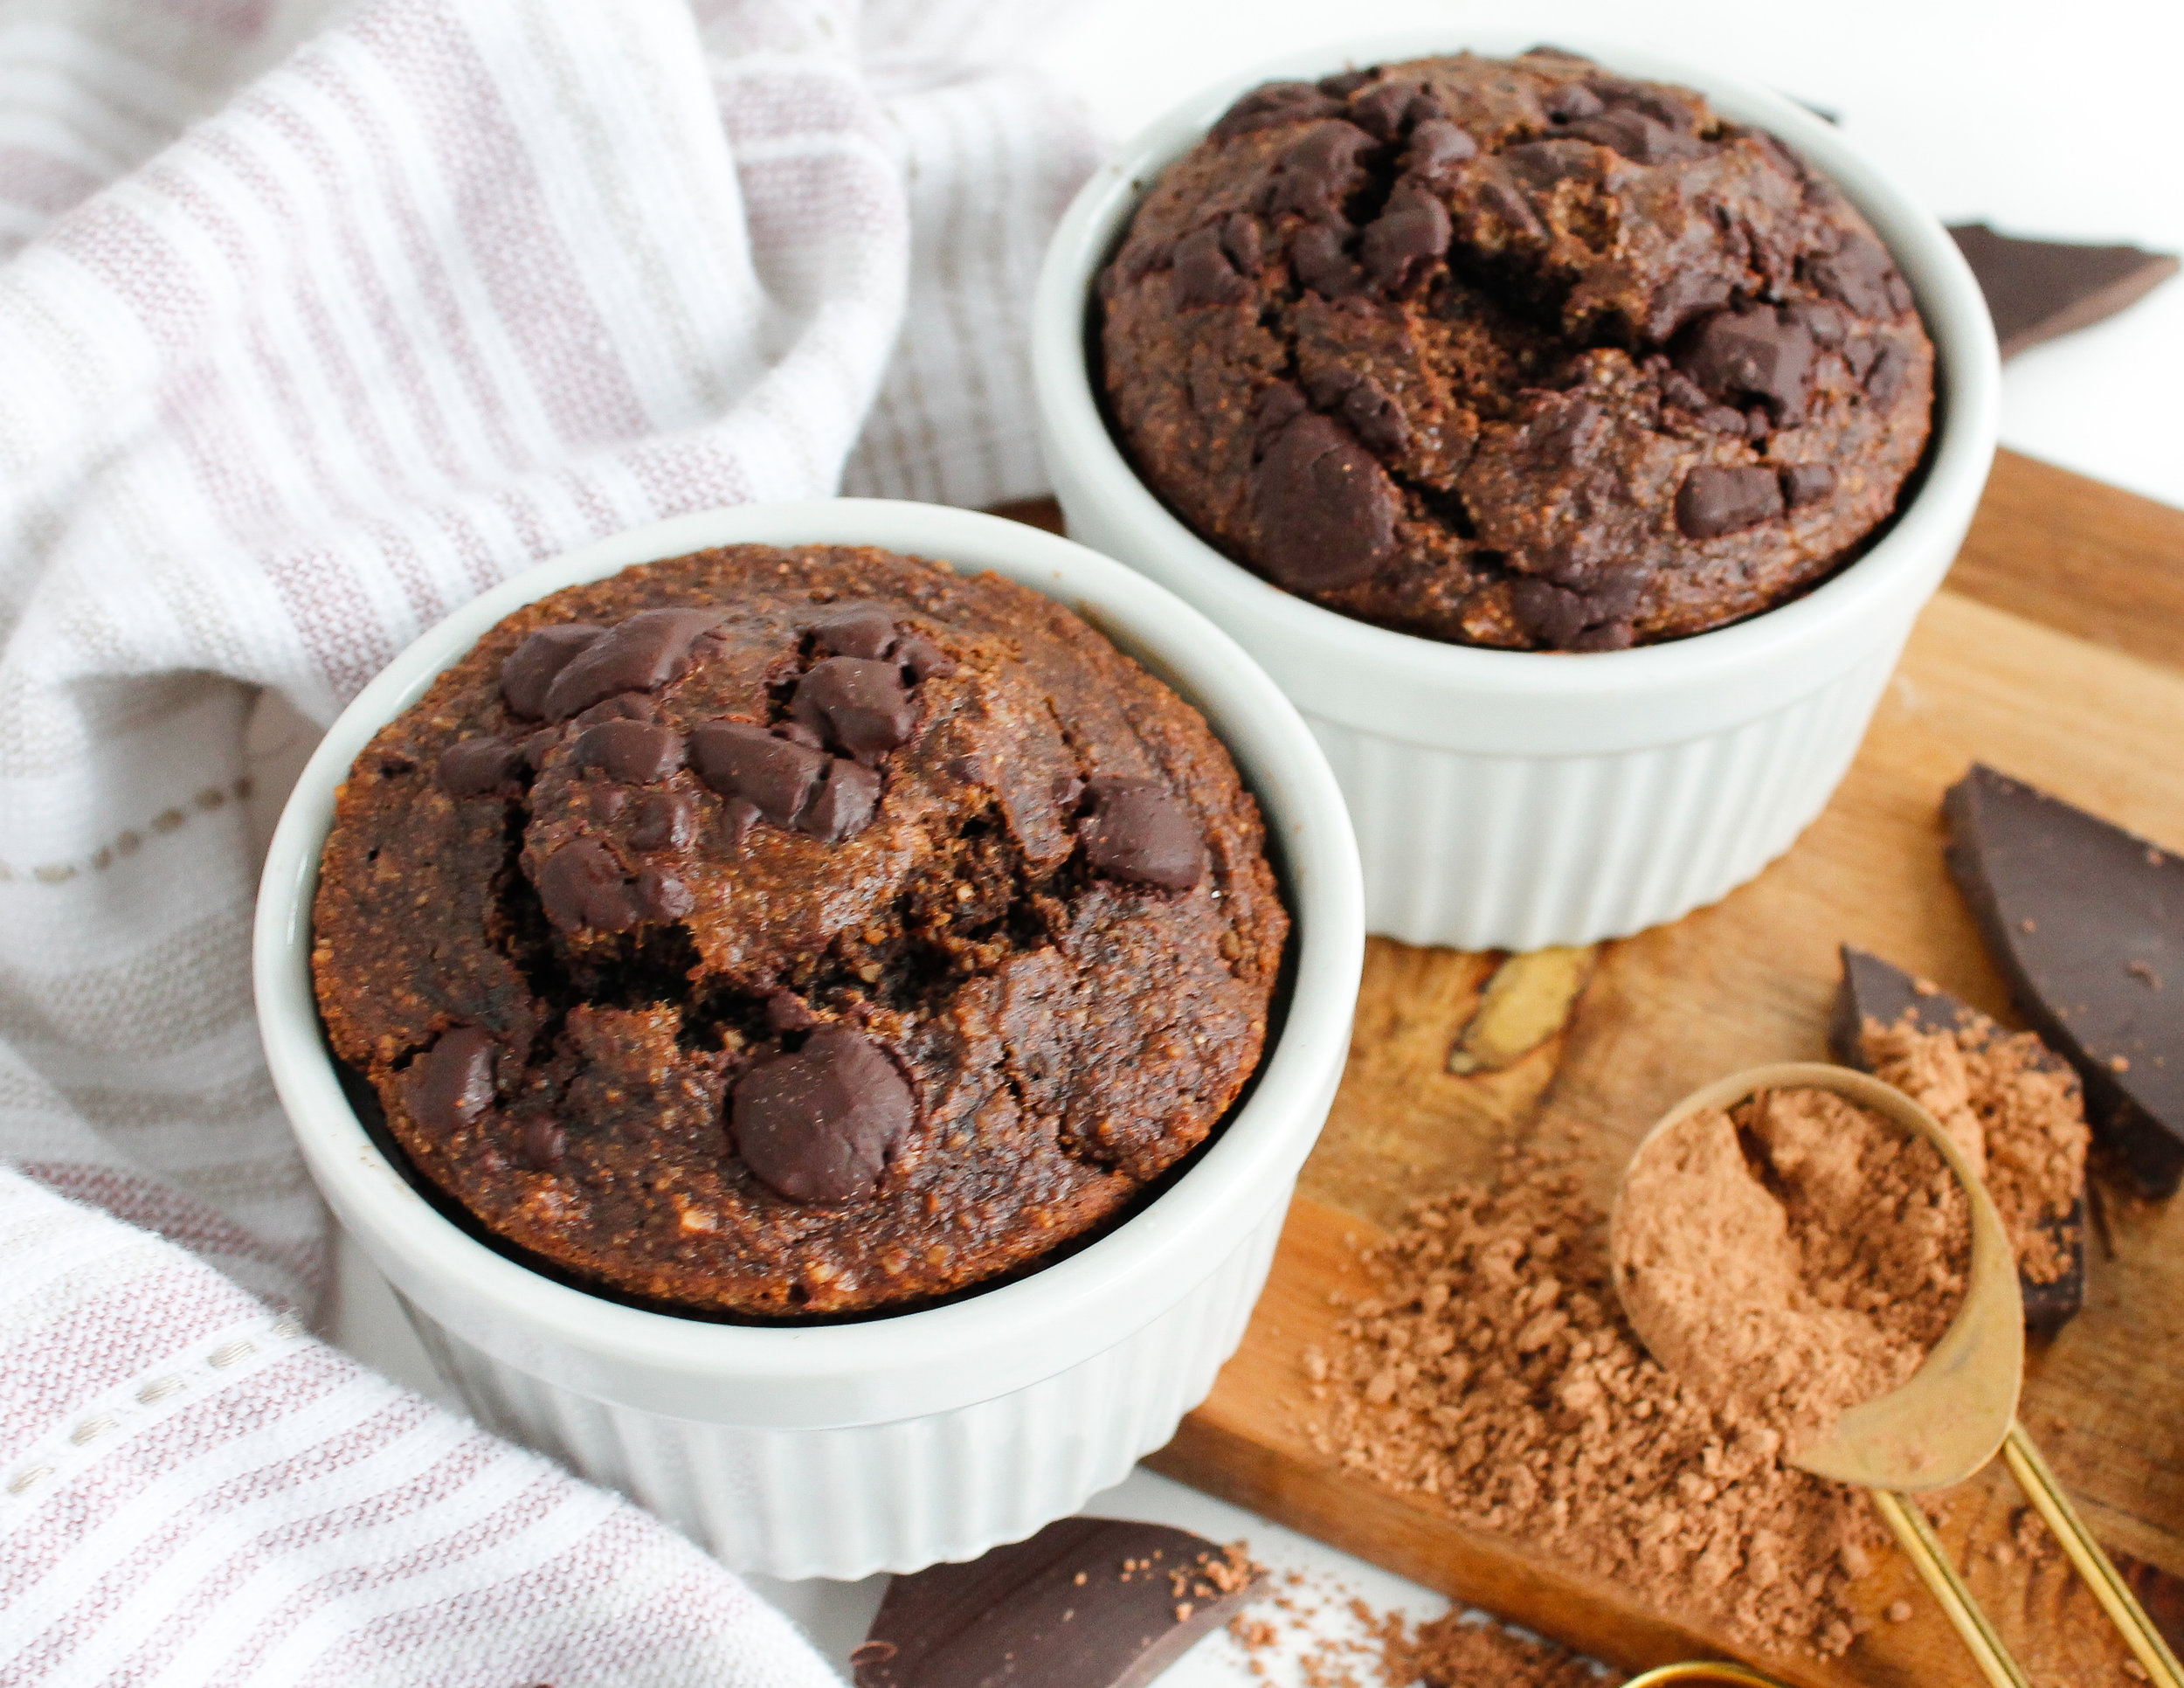 double serve mini paleo chocolate banana bread || These mini chocolate banana breads are grain free, gluten free, dairy free AND refined sugar free! Made with wholesome, REAL ingredients, it's sure to nourish your body and satisfy your sweet tooth. The perfect healthy breakfast, snack or dessert. #paleobananabread #bananabread #cacaobananabread #chocolatebananabread